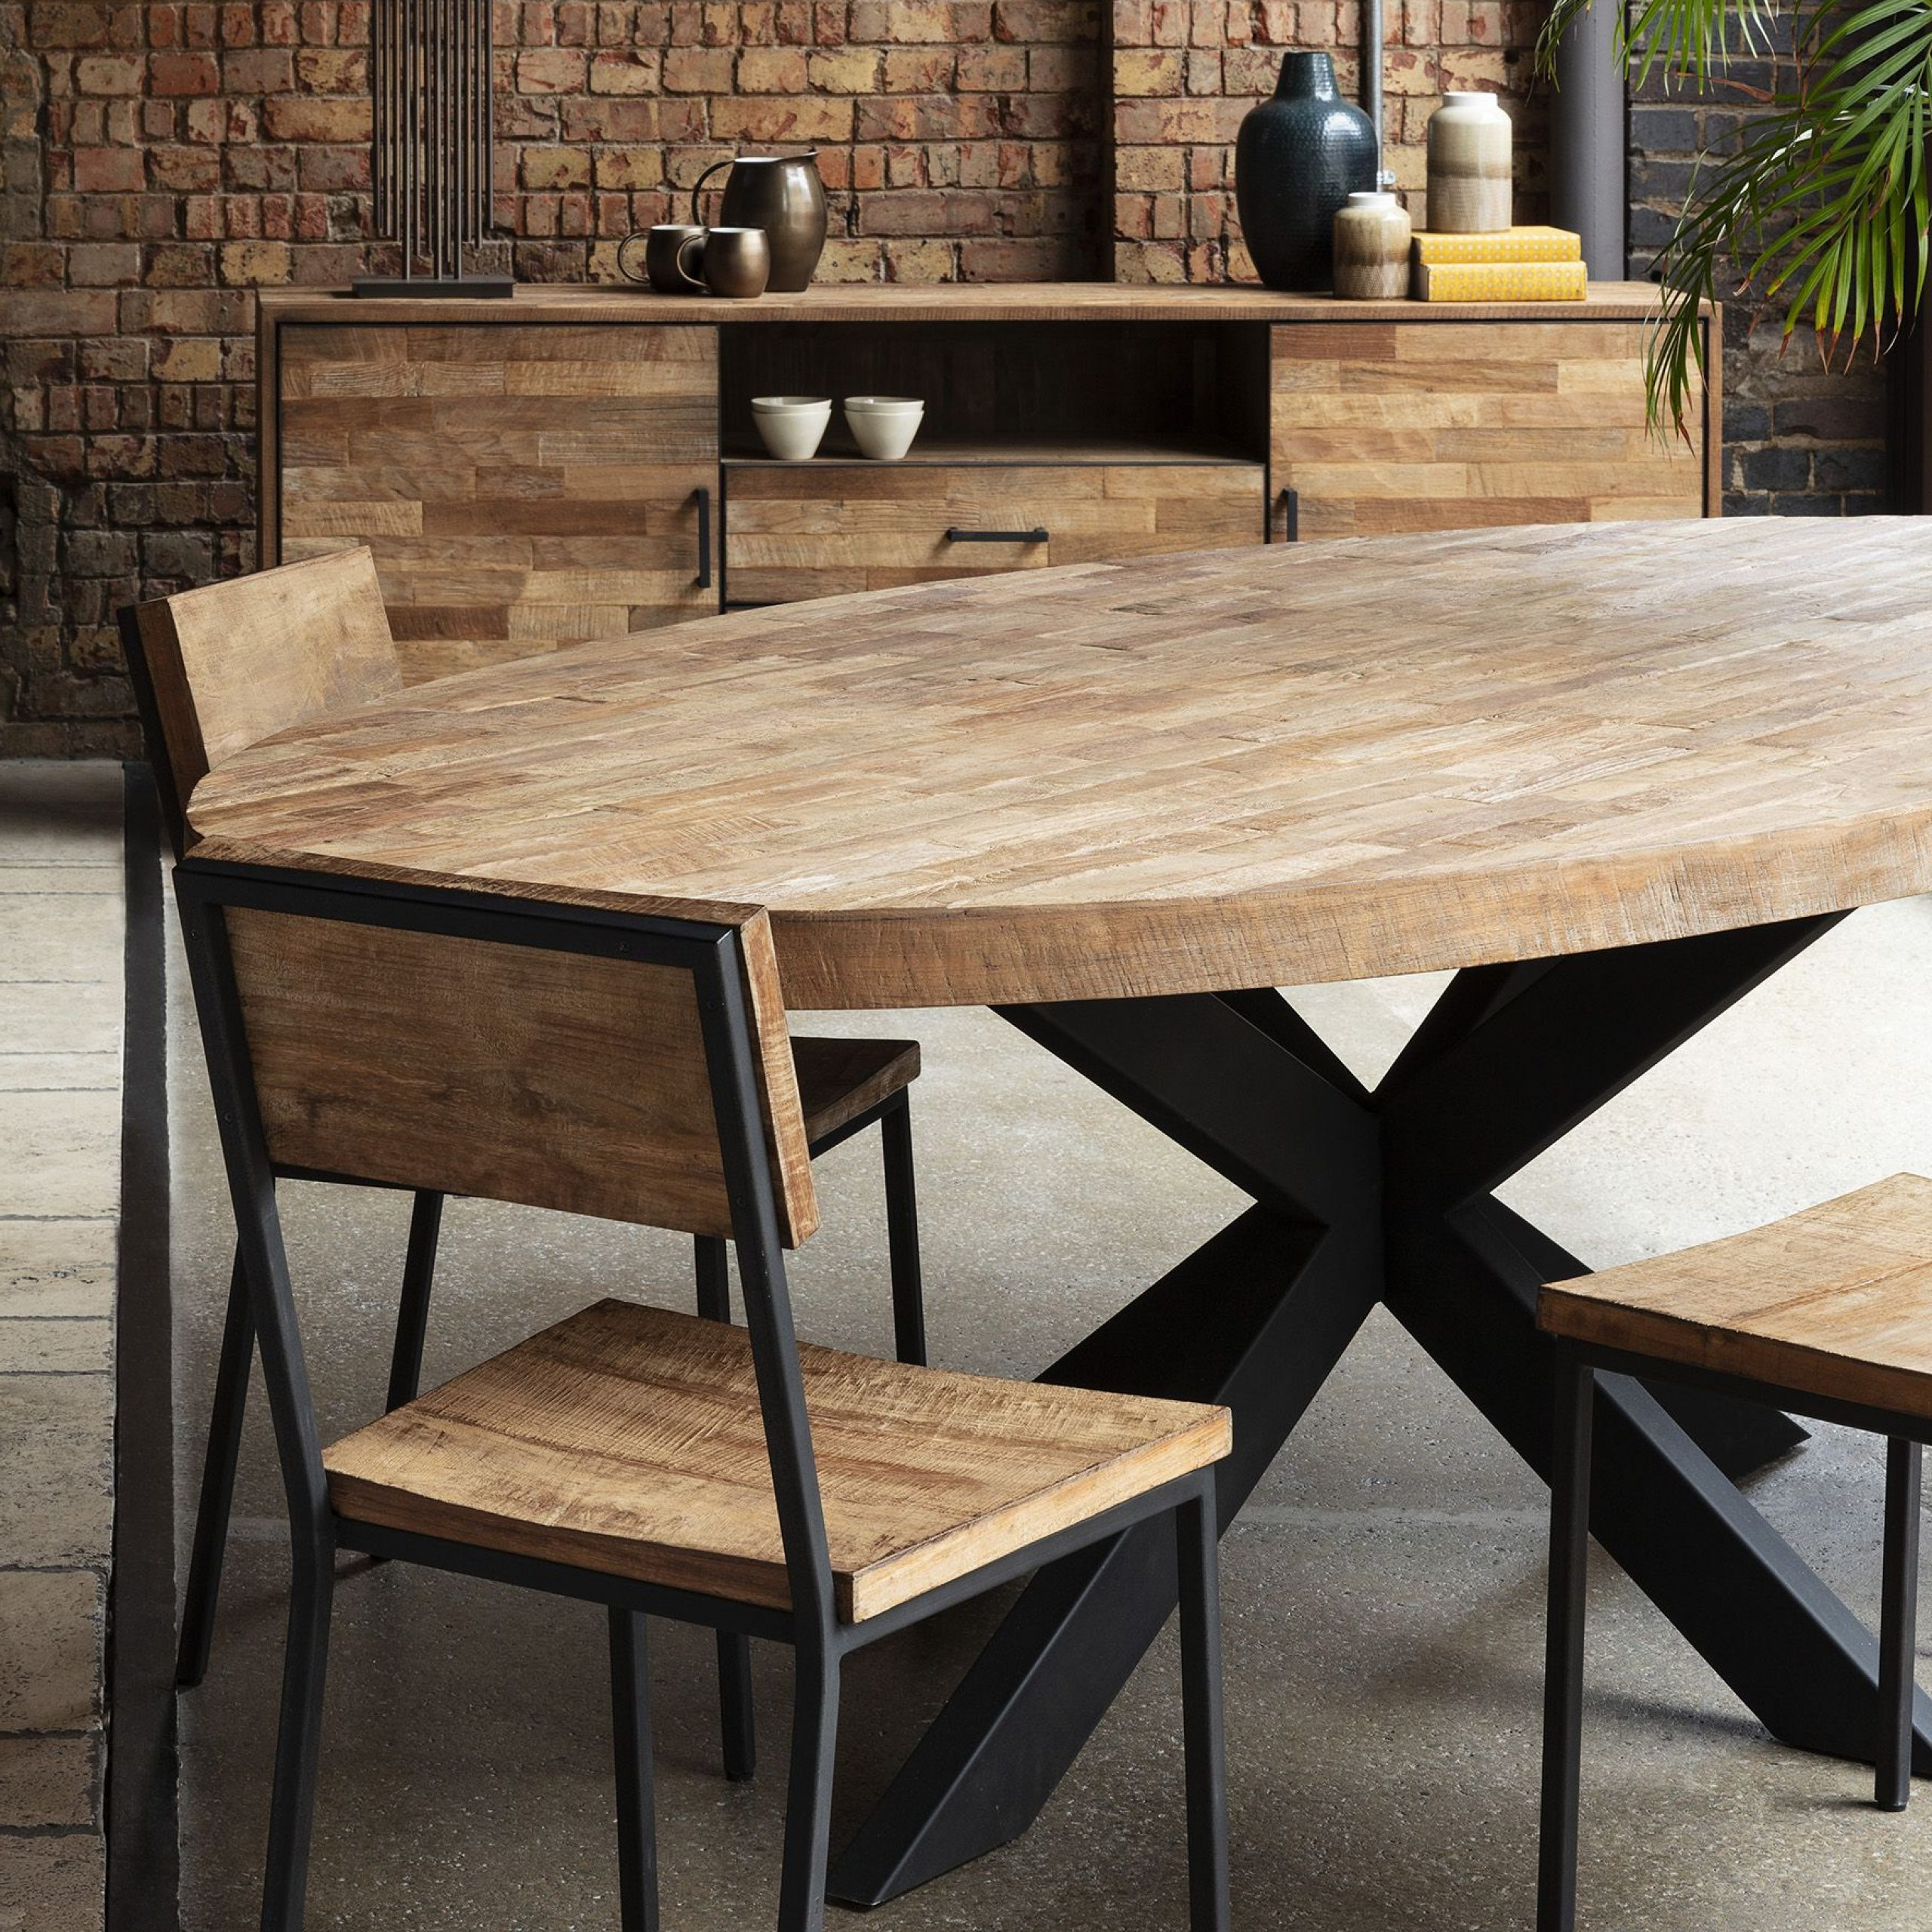 Acacia Dining Tables With Black X Legs For Well Known Baxter Bond Teak Oval Dining Table (View 12 of 25)